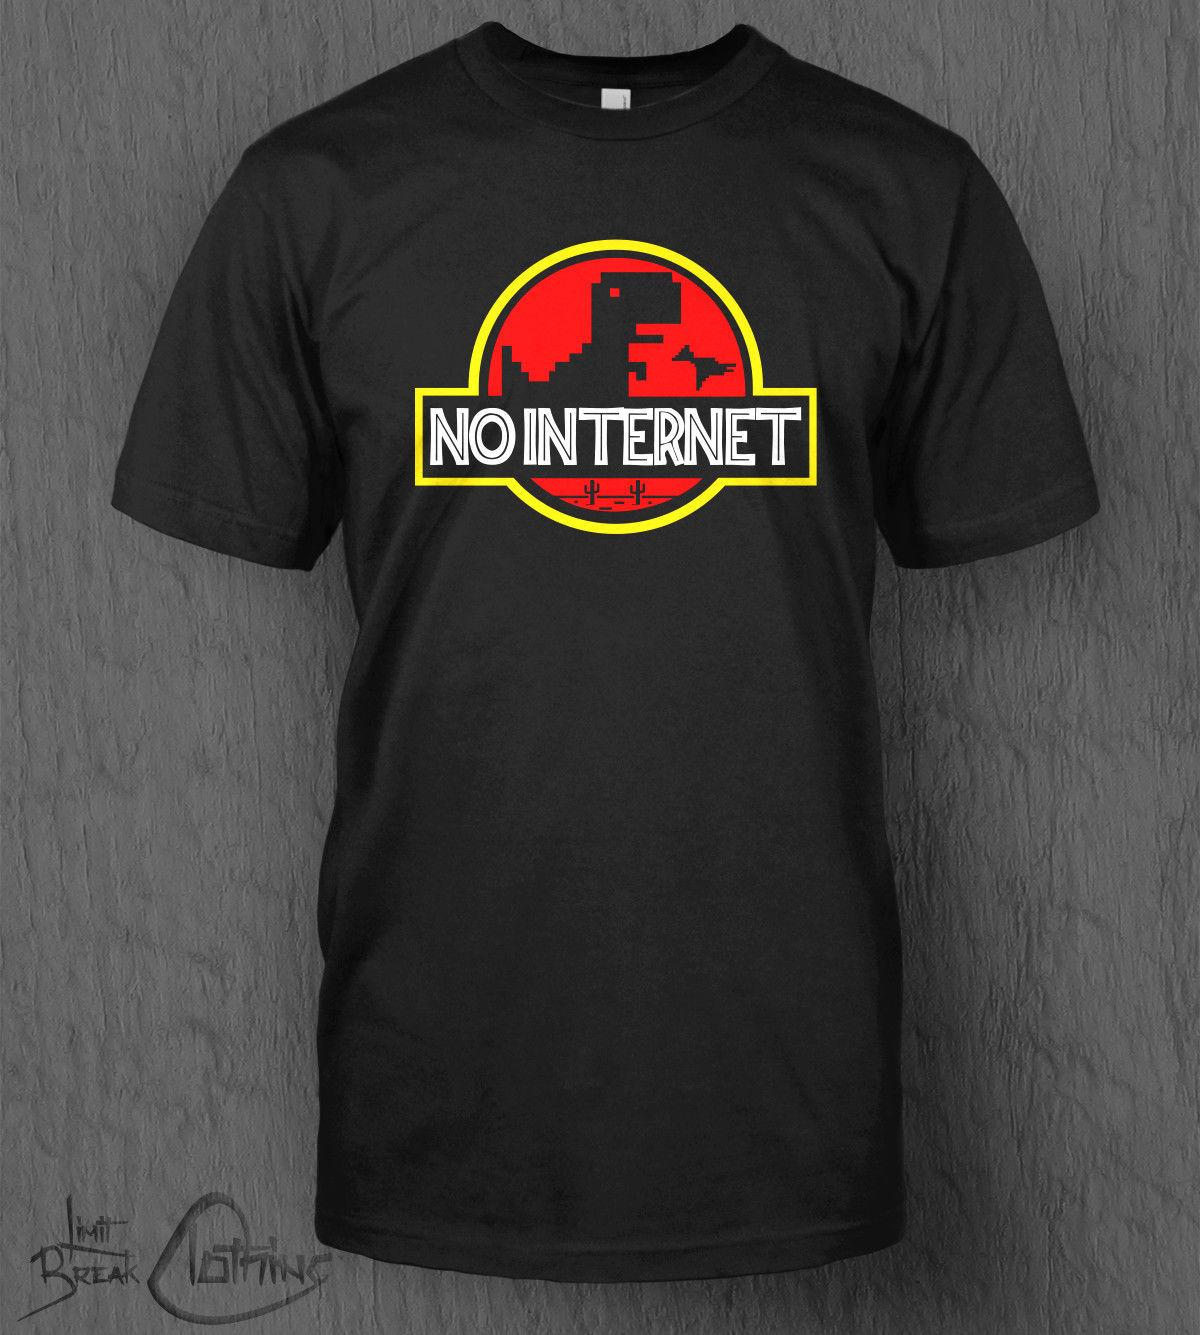 0b758055e No Internet T-Shirt MEN'S Jurassic Park Jurassic World Google Chrome Game  Dino Funny free shipping Unisex Casual tee gift